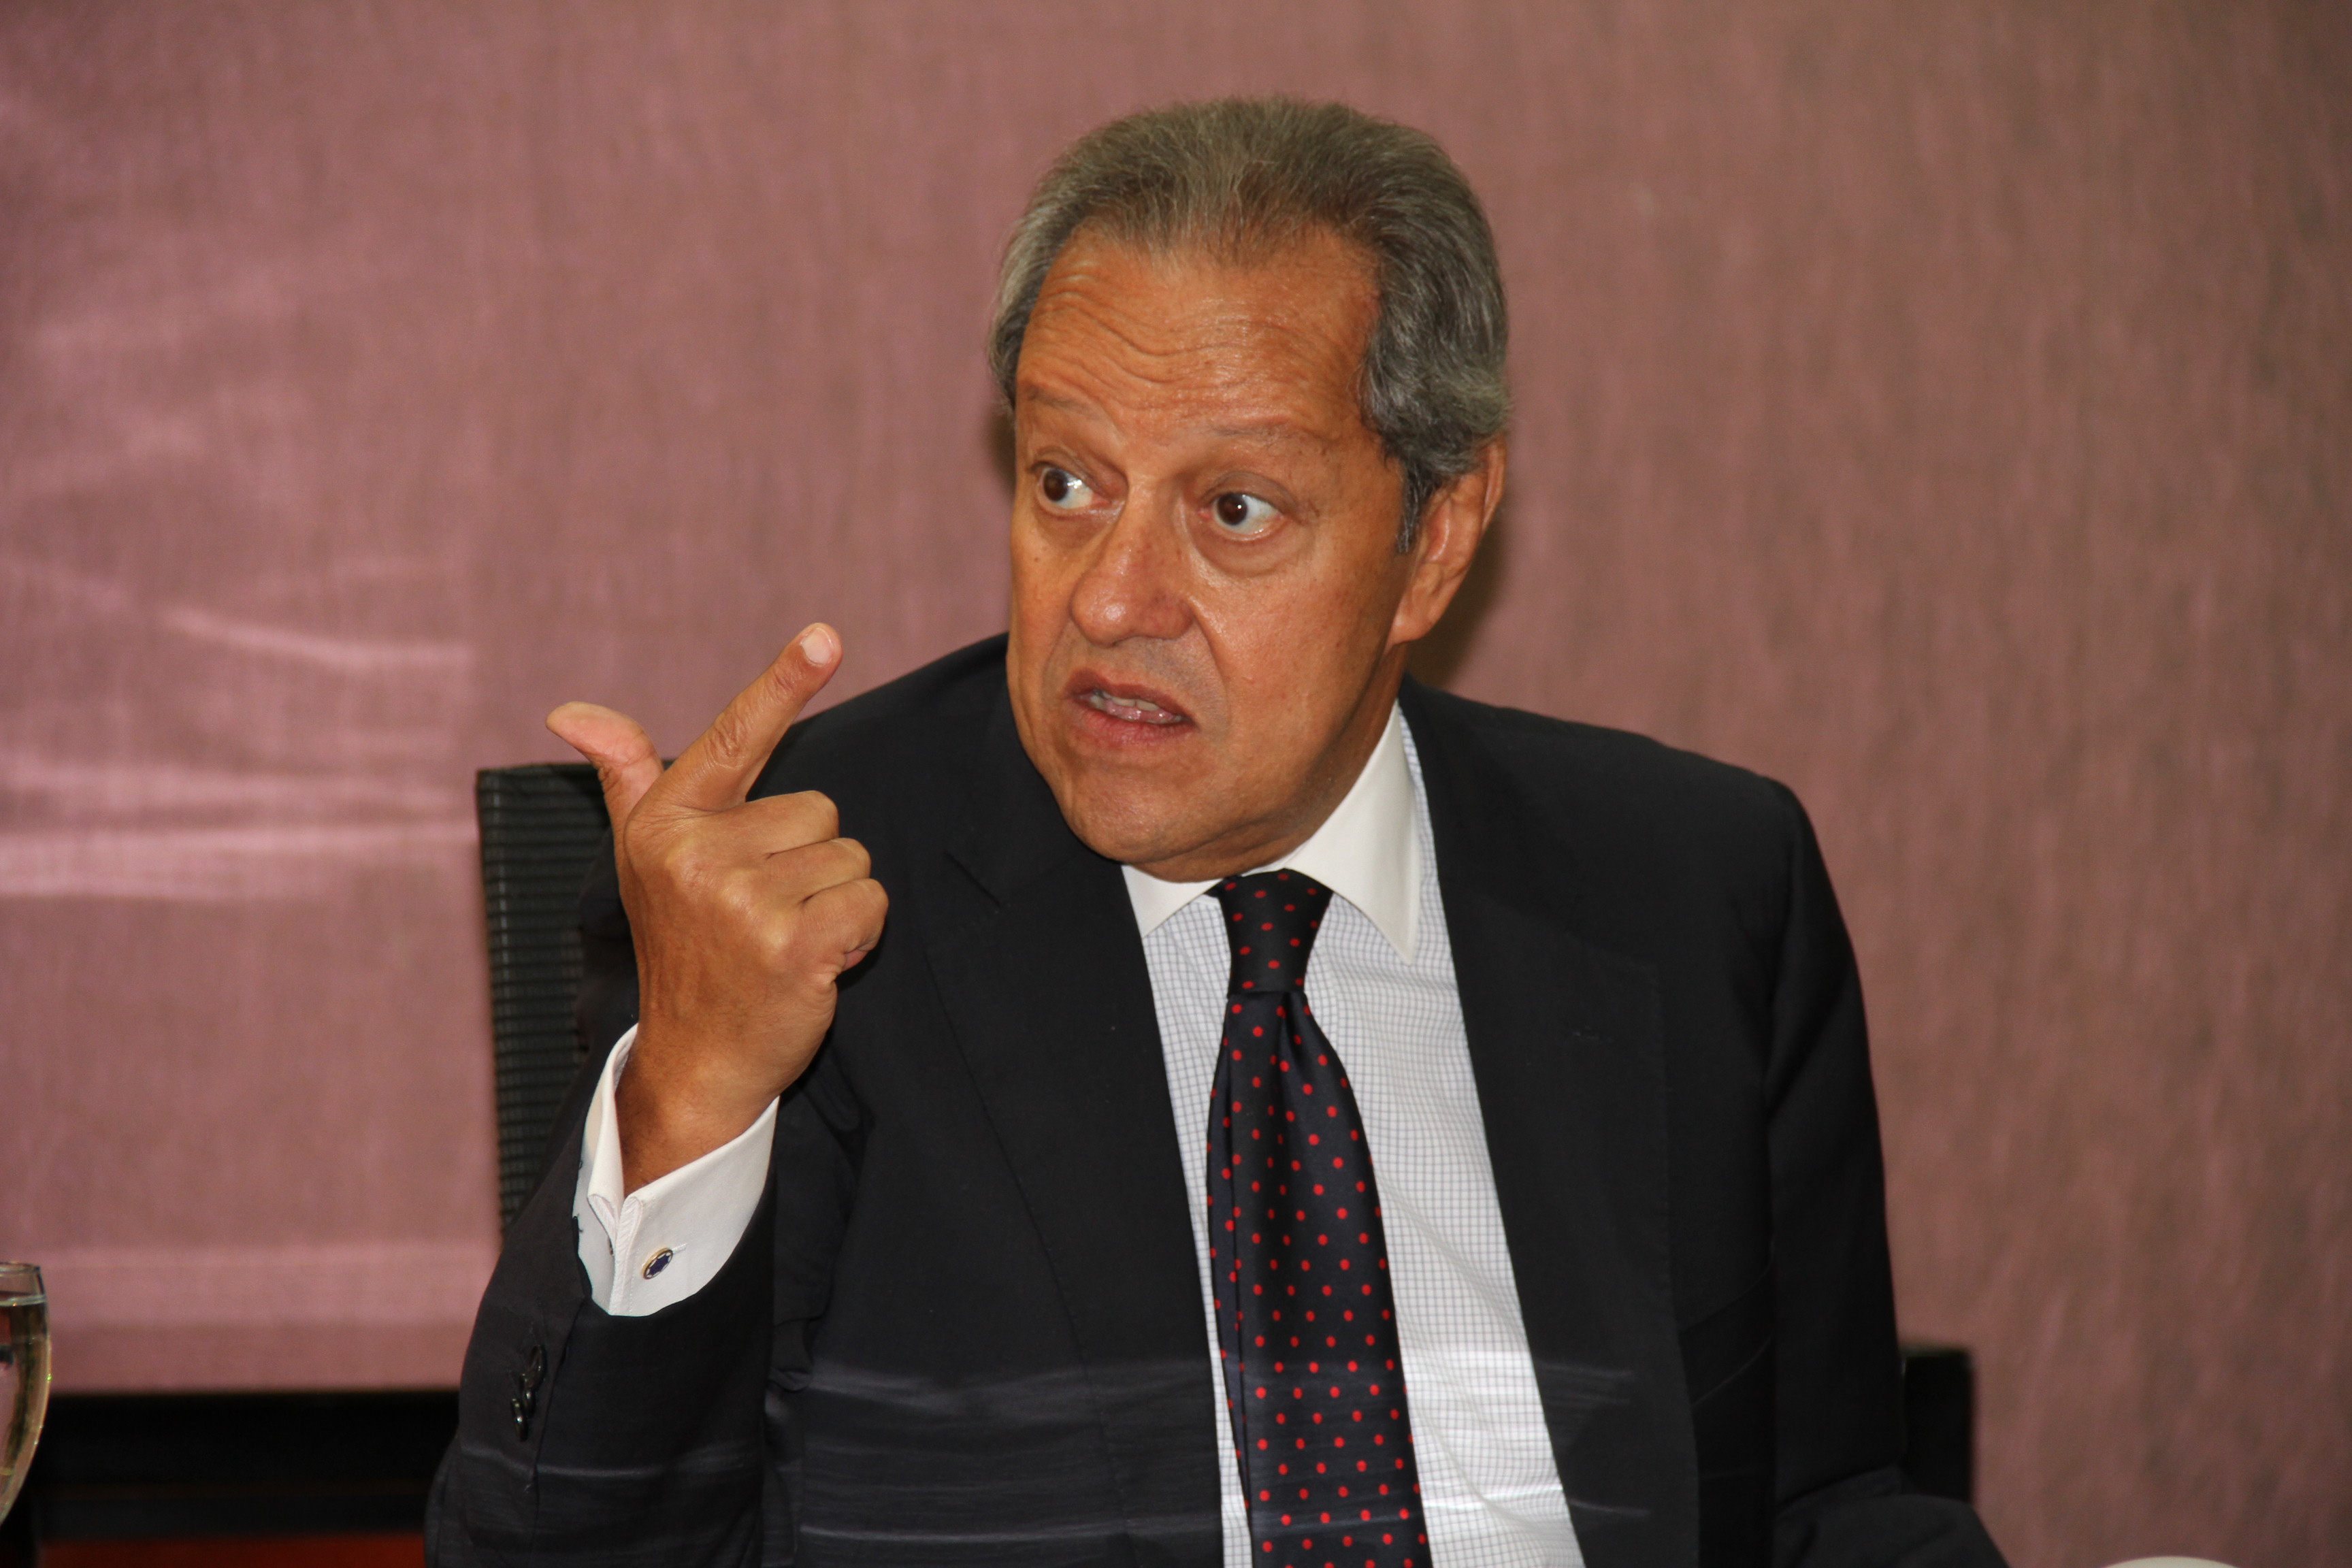 Minister of Industry and Foreign Trade Mounir Fakhry Abdel Nour told the Daily News Egypt in an interview for the Euromoney supplement that the law offering preferential treatment to local products will be referred to the presidency in September for approval. (DNE Photo)